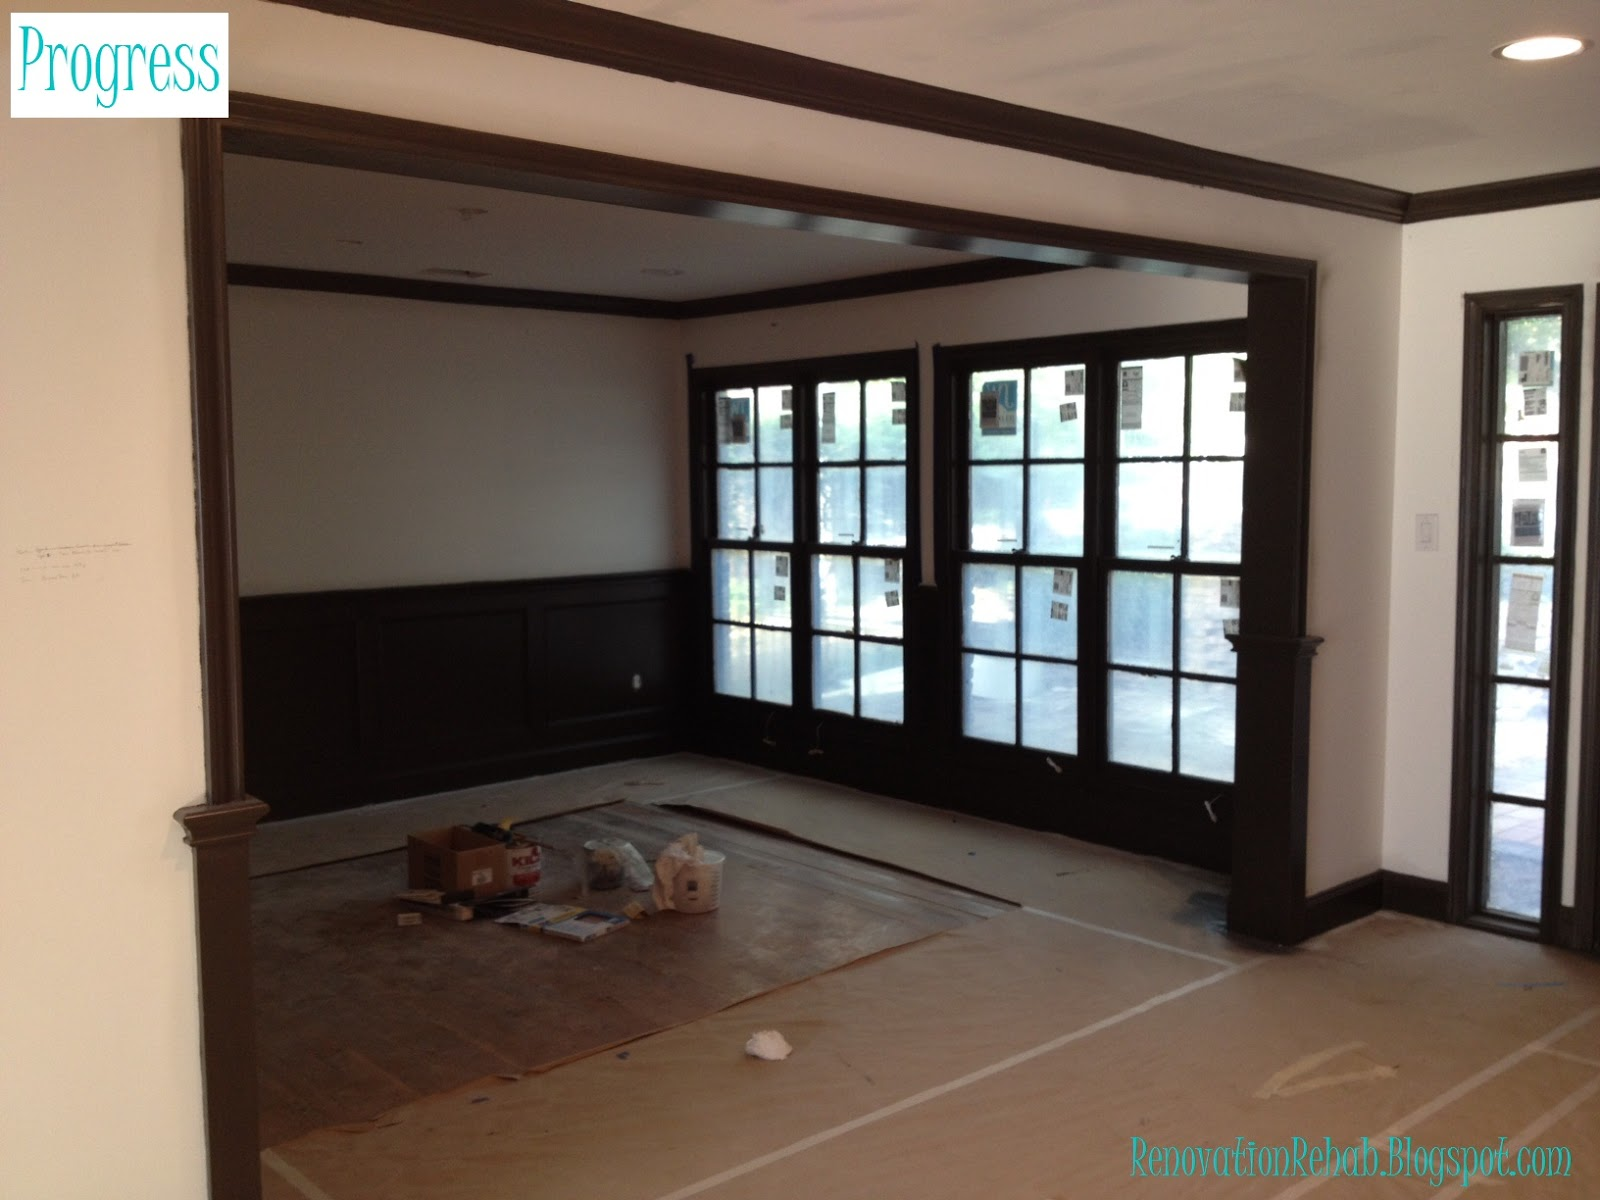 Renovation Rehab: Let the Painting Commence!